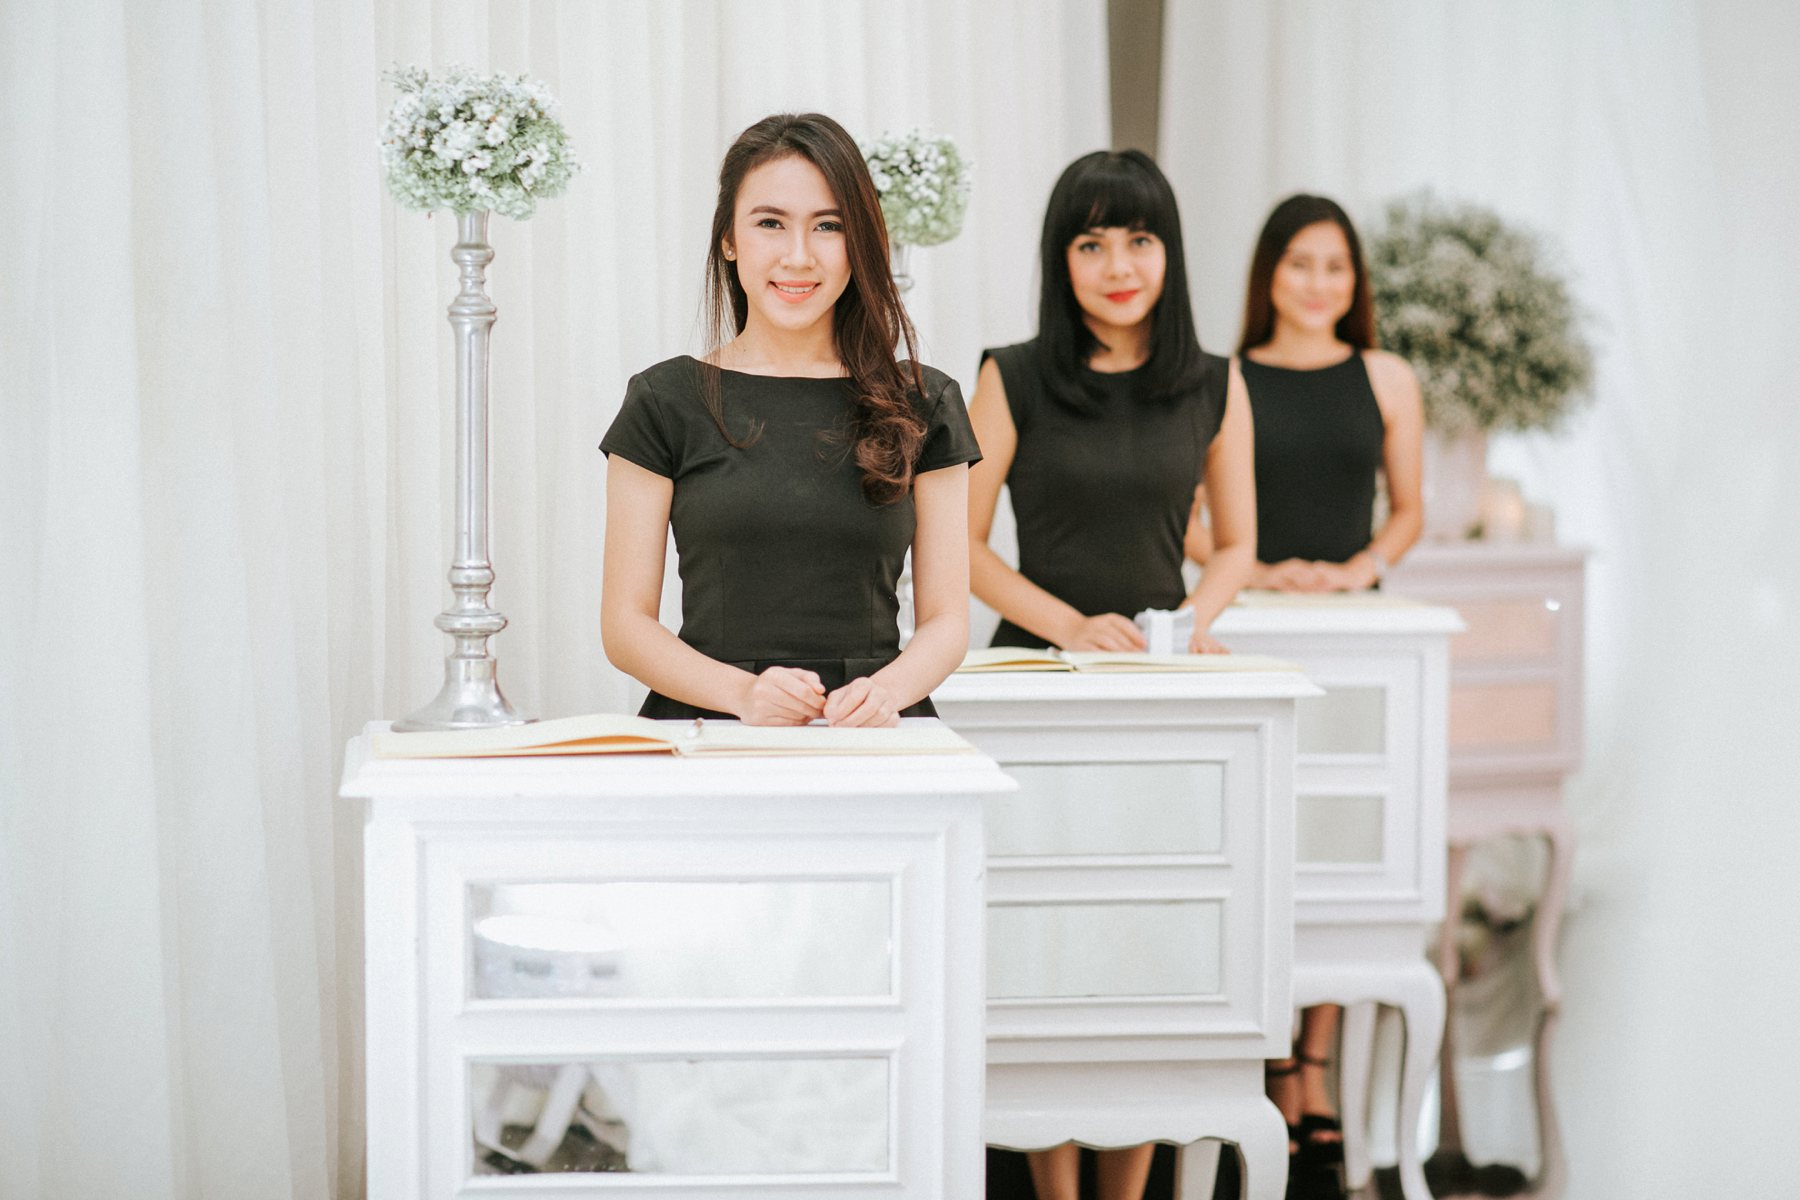 ascott_kuningan_wedding52